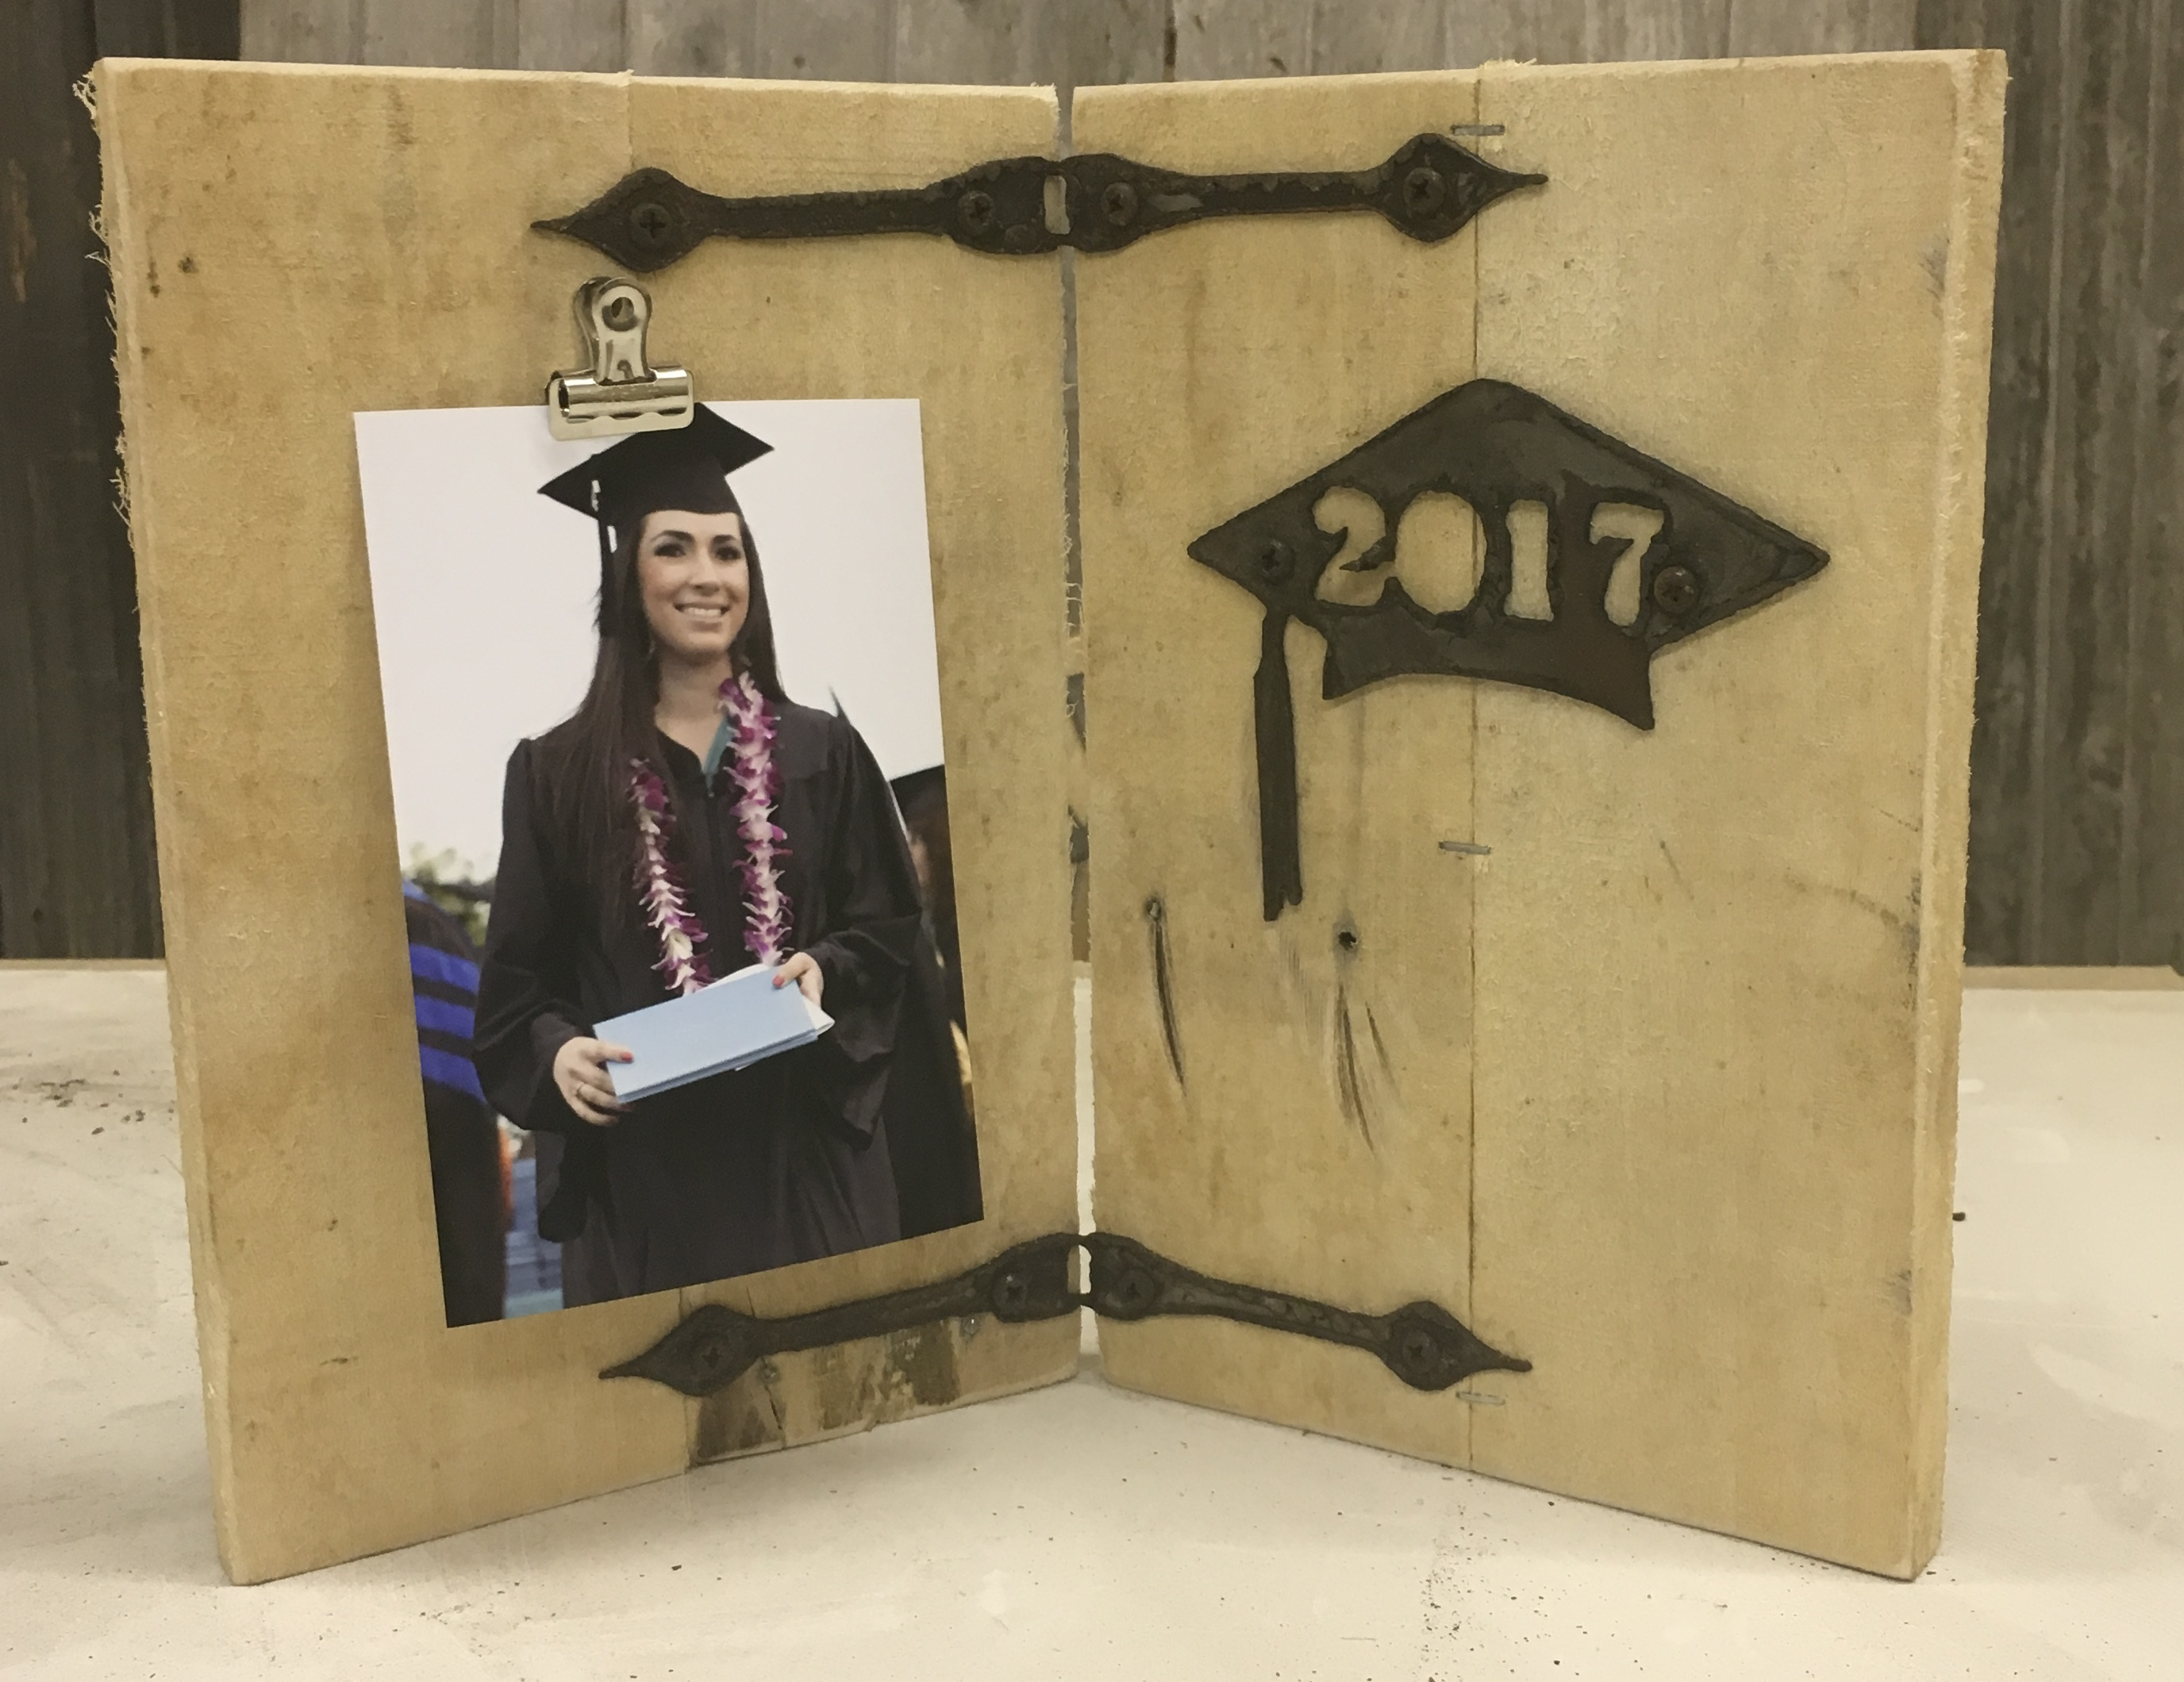 Rustic Decorating Ideas Graduation Graduation Freestanding Frame W Cap And Year Rustic Metal